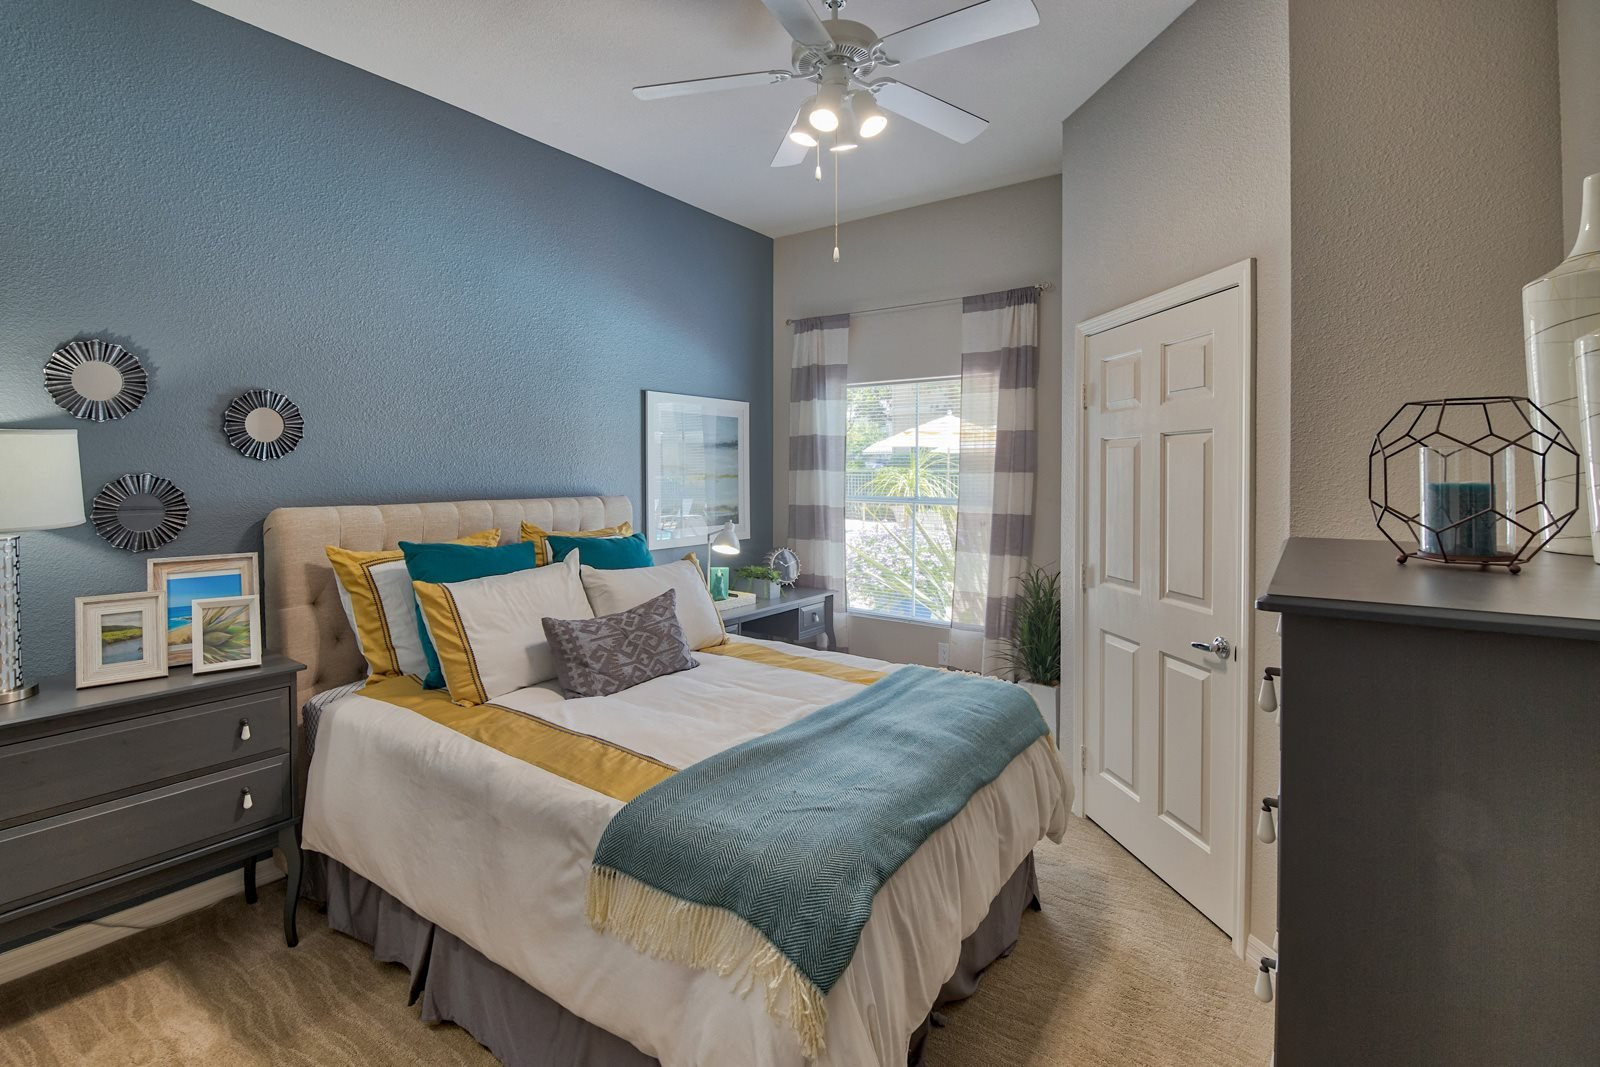 Contemporary Ceiling Fans in All Bedrooms at Windsor at Aviara, Carlsbad, California